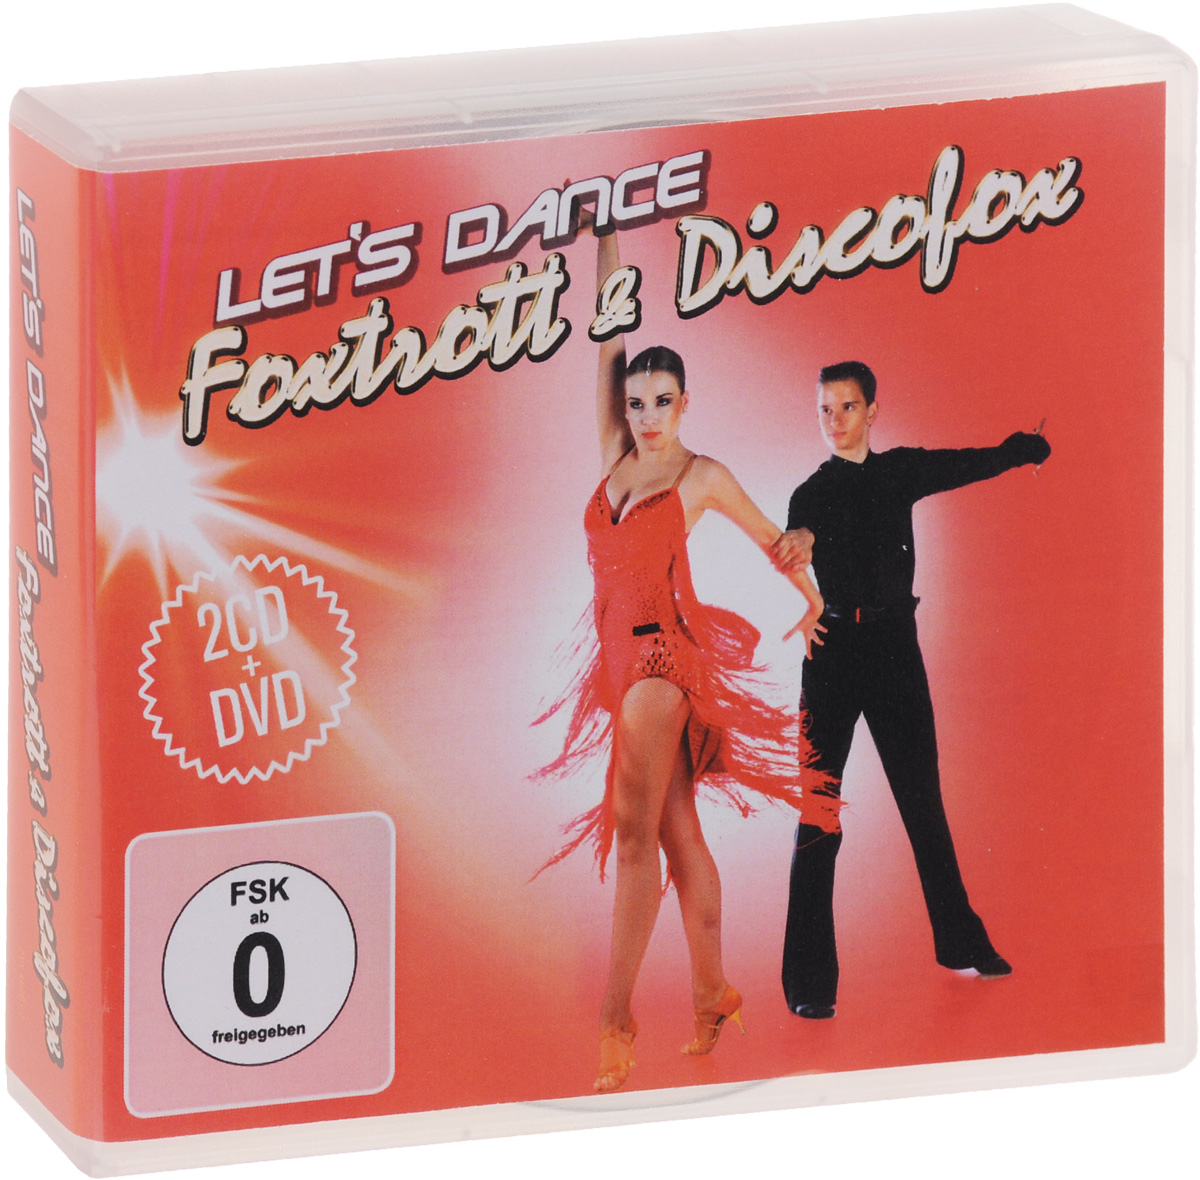 Let's Dance. Foxtrott & Discofox (2 CD + DVD)